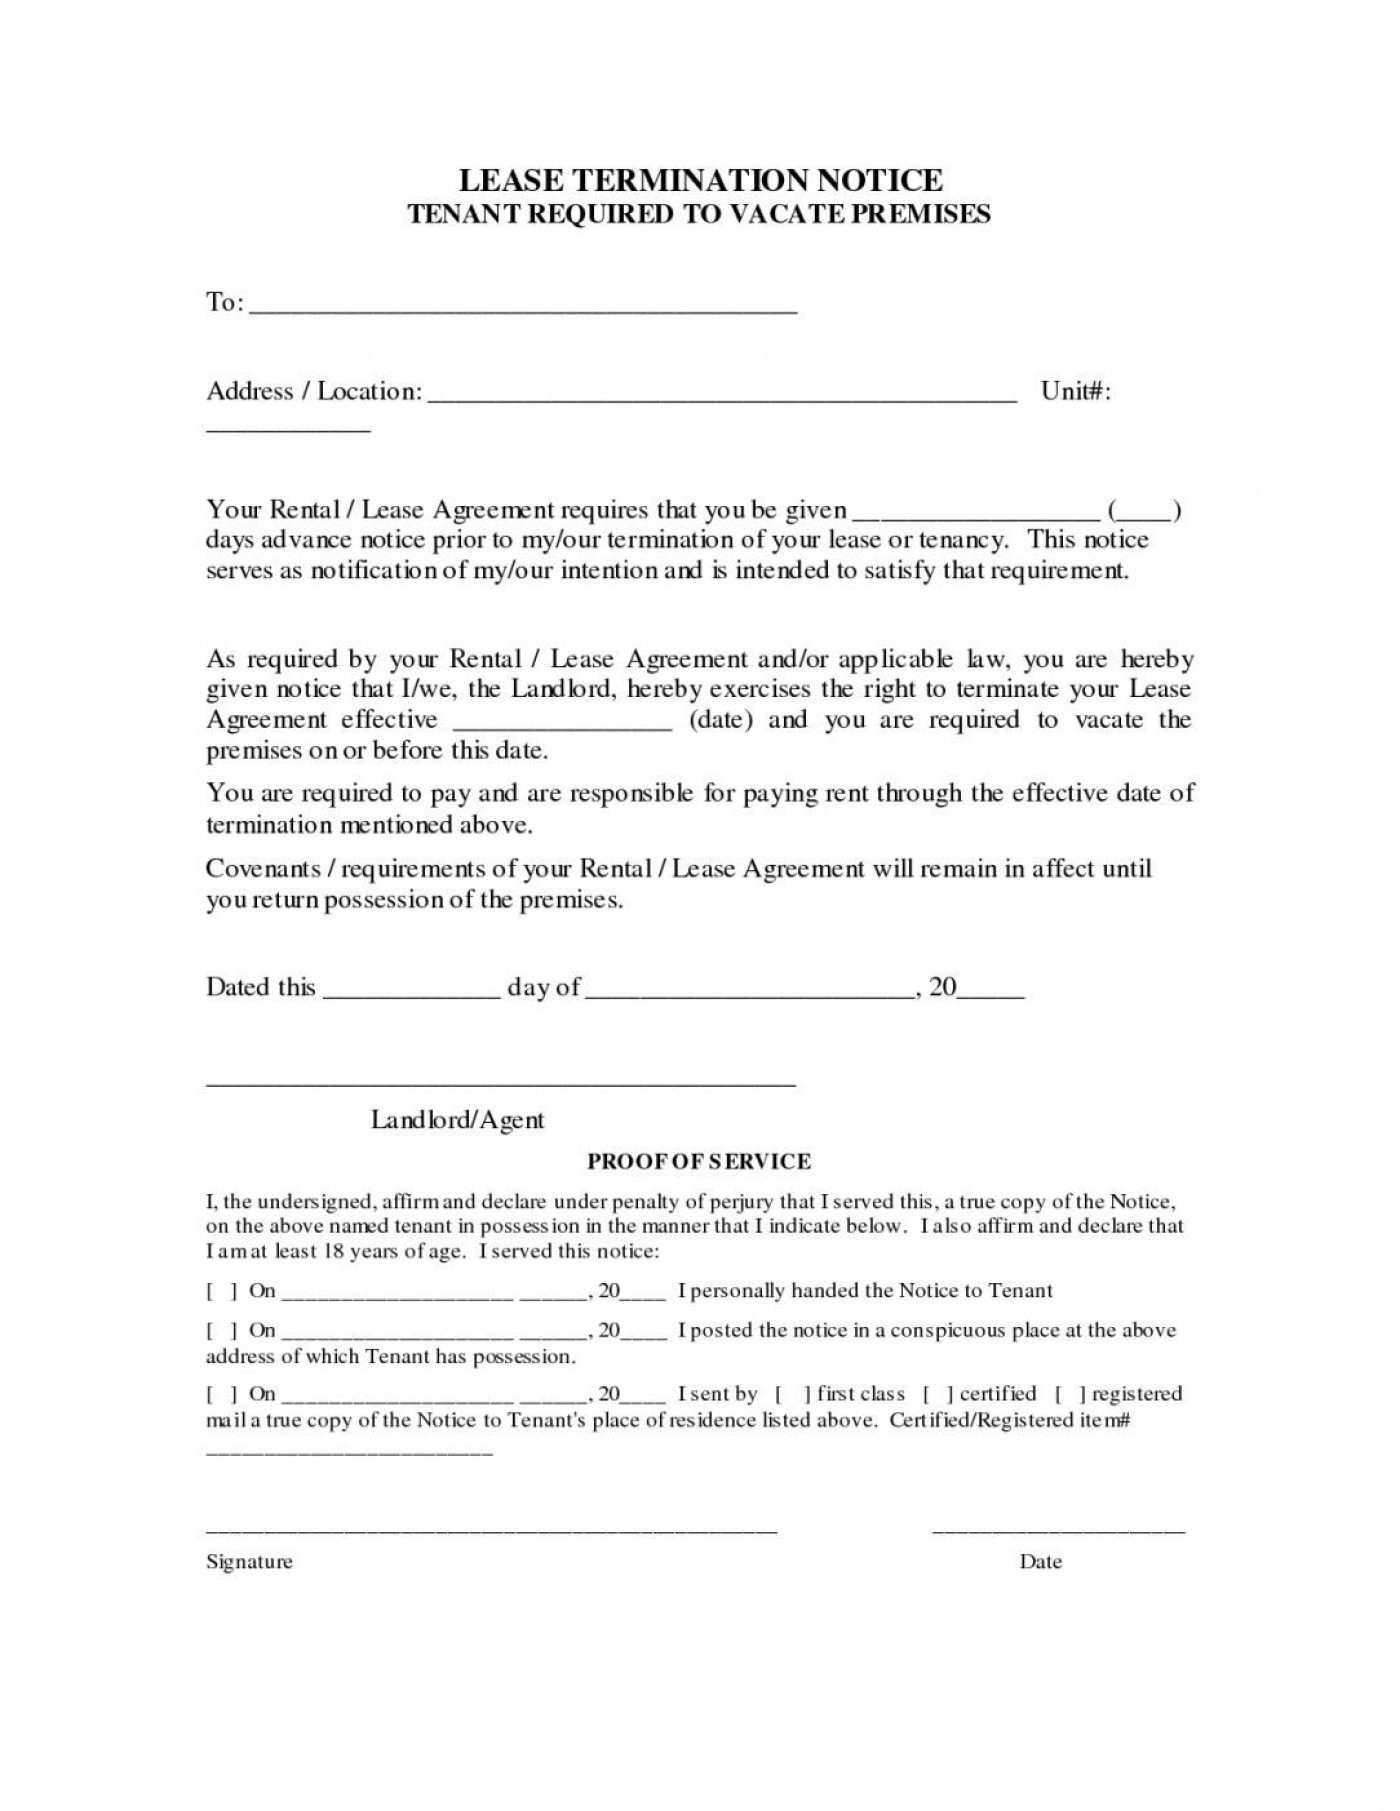 000 Archaicawful Renter Lease Agreement Form Inspiration  Rent Format In Tamil Florida Rental Printable1400